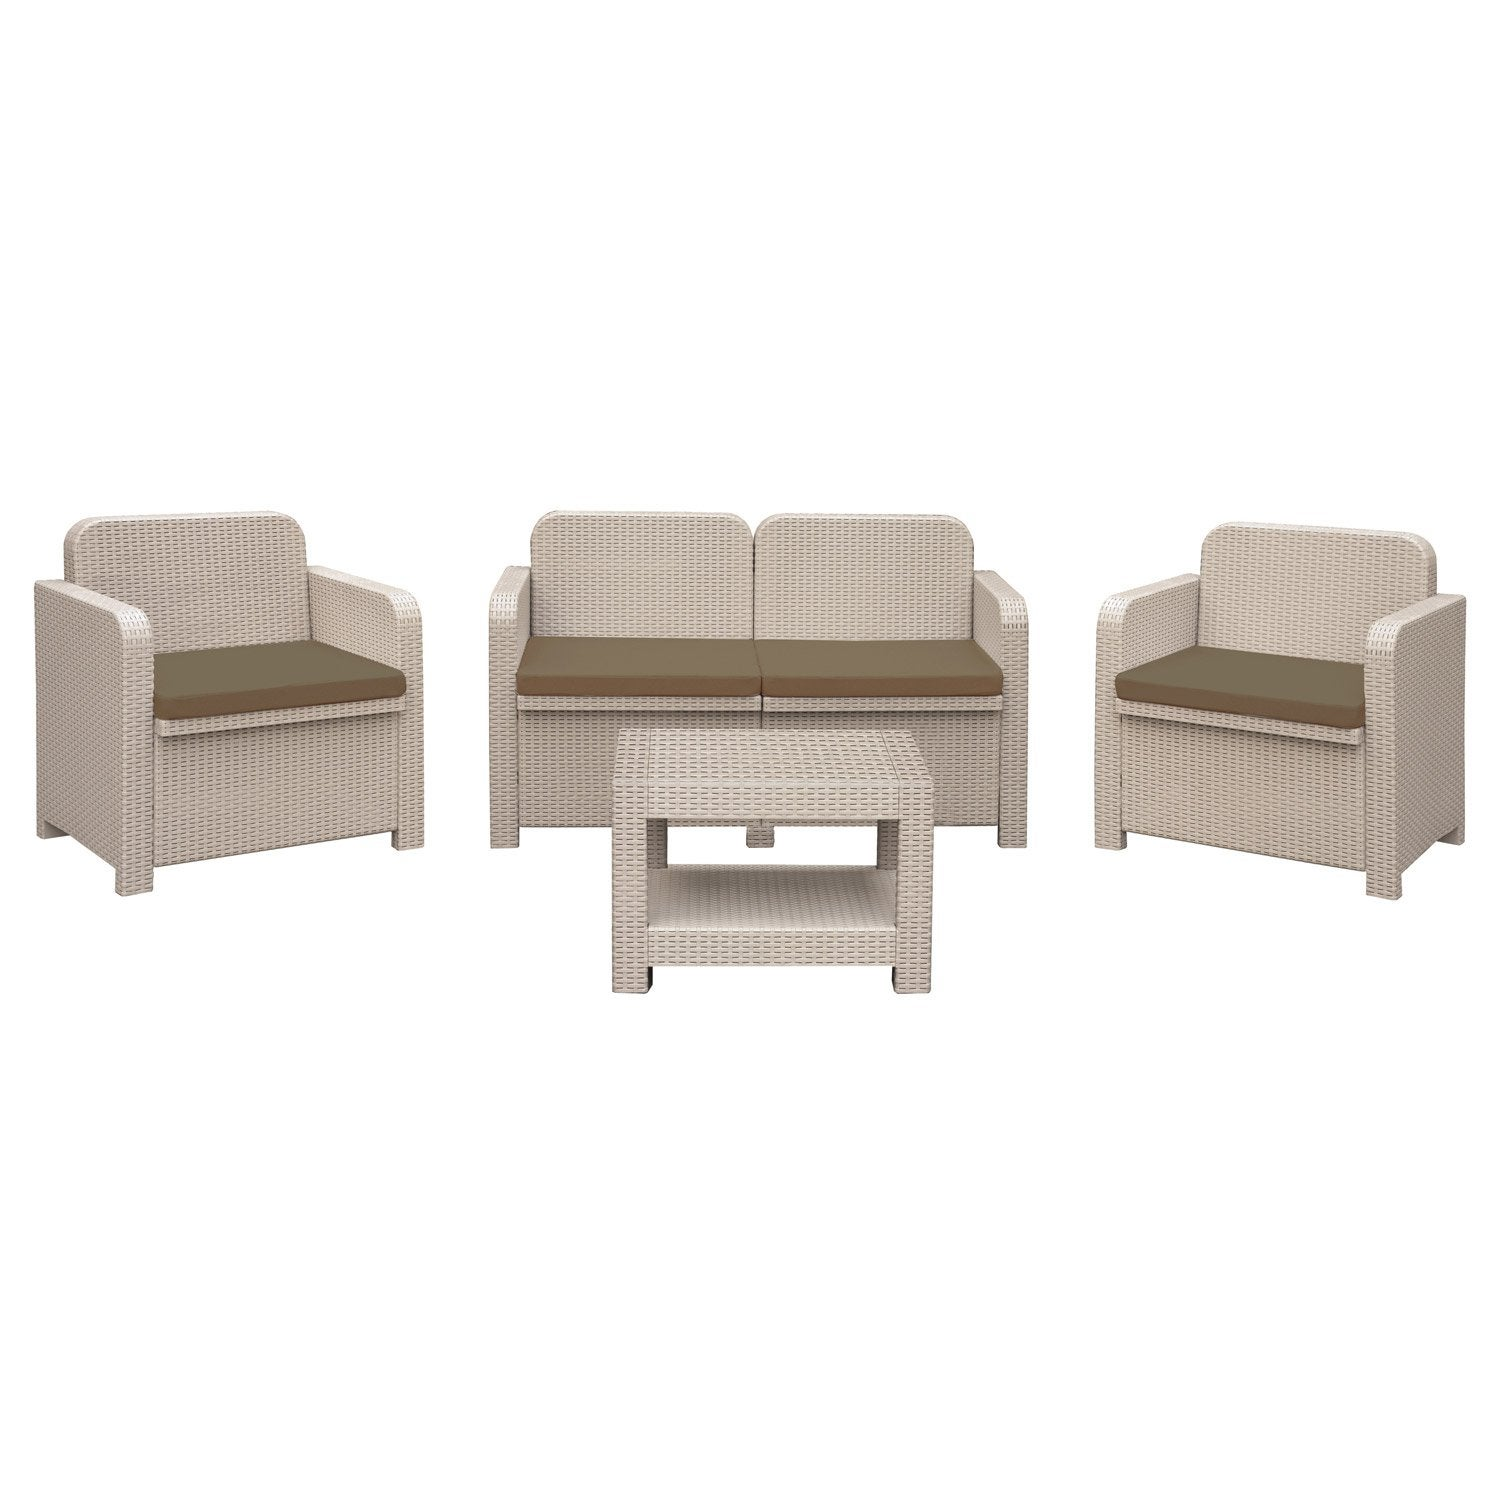 Salon De Jardin Sorrento Grand Soleil Canap 2 Fauteuils Table Taupe Leroy Merlin